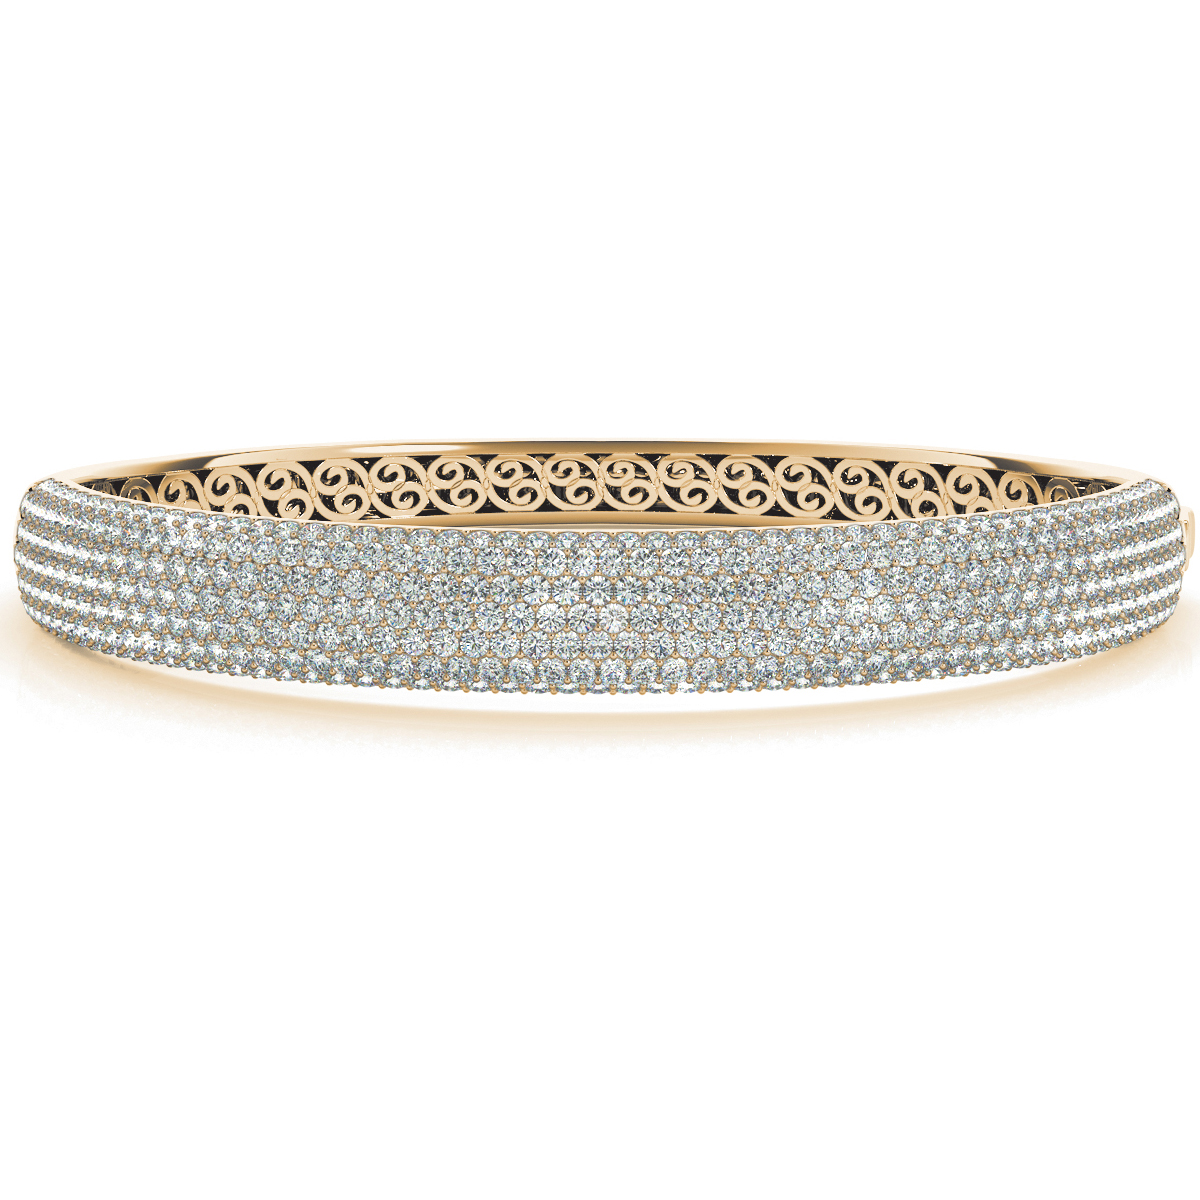 14k-yellow-gold-multi-row-bangles-and-bracelet-70012